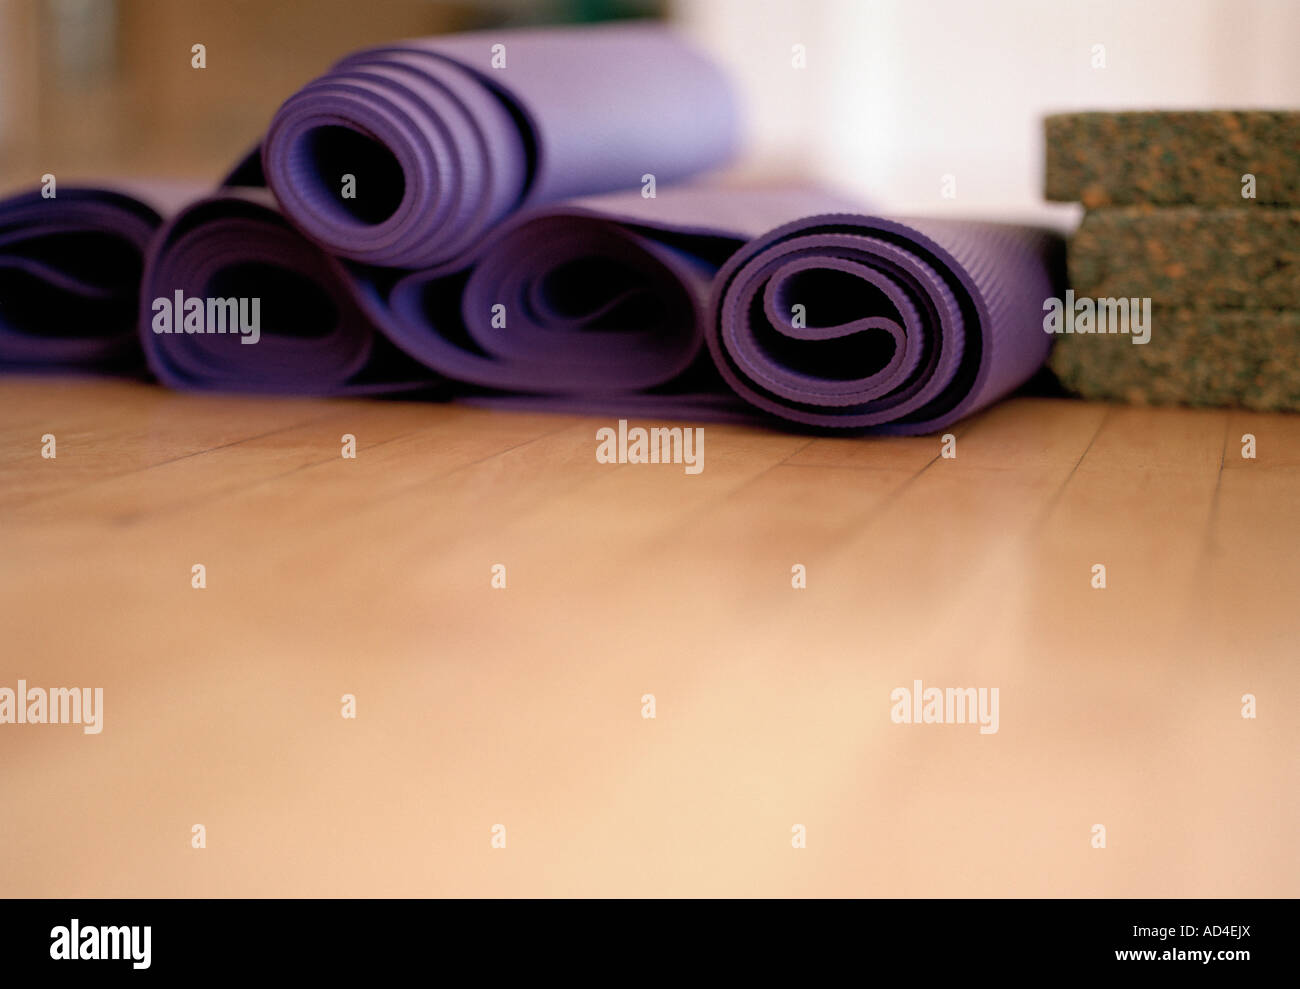 Exercise mats rolled up - Stock Image